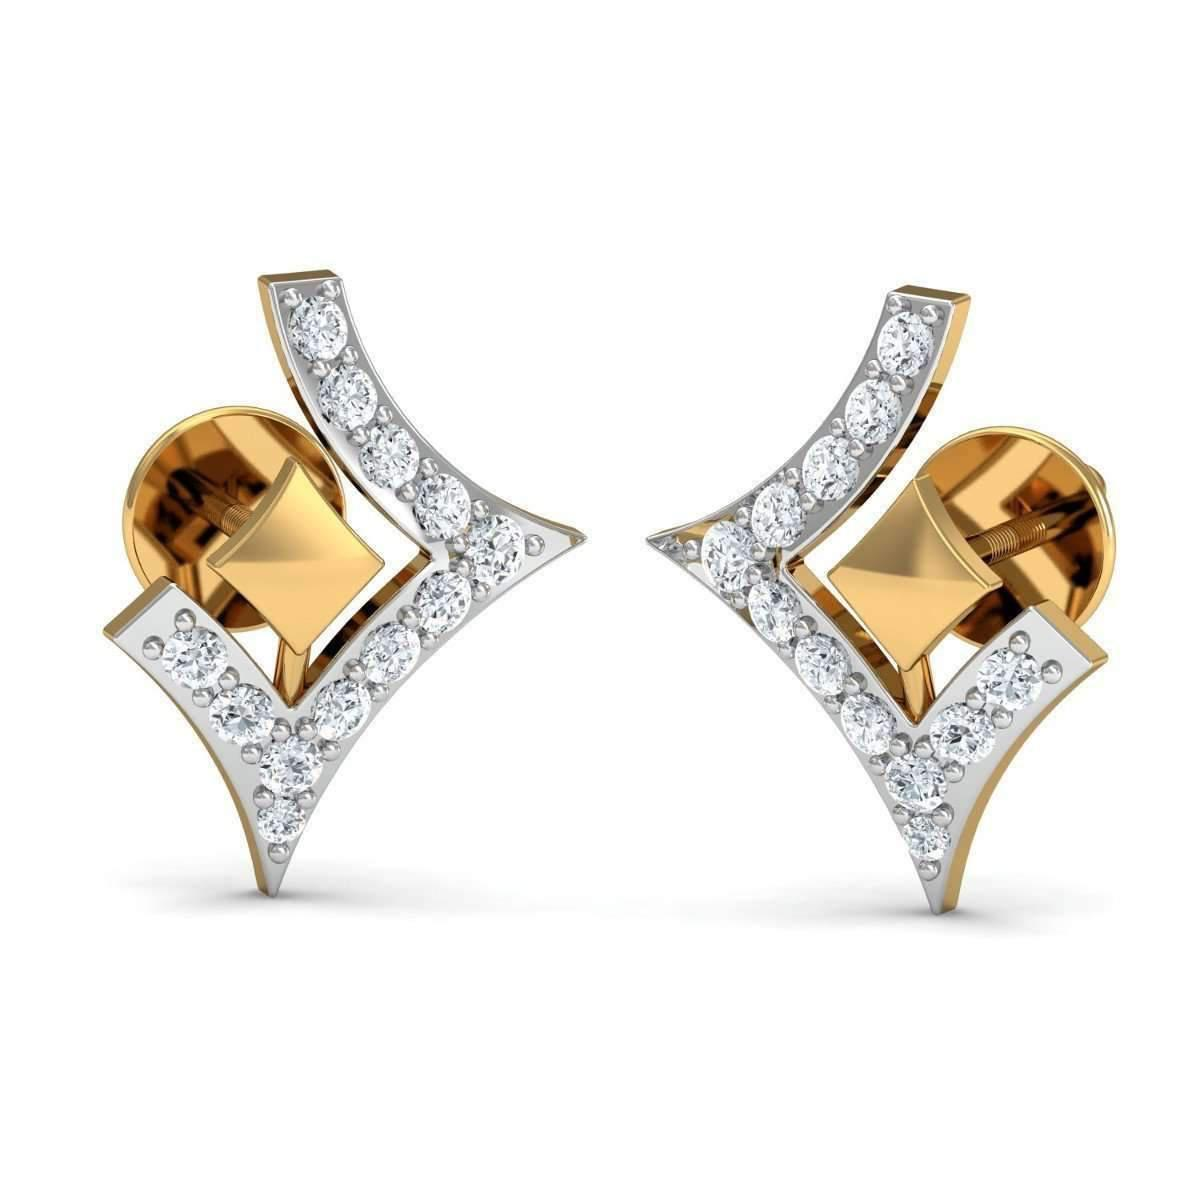 Diamoire Jewels Brilliant Cut Pave Diamond Earrings in 10kt Yellow Gold 1Q6gNvsfx